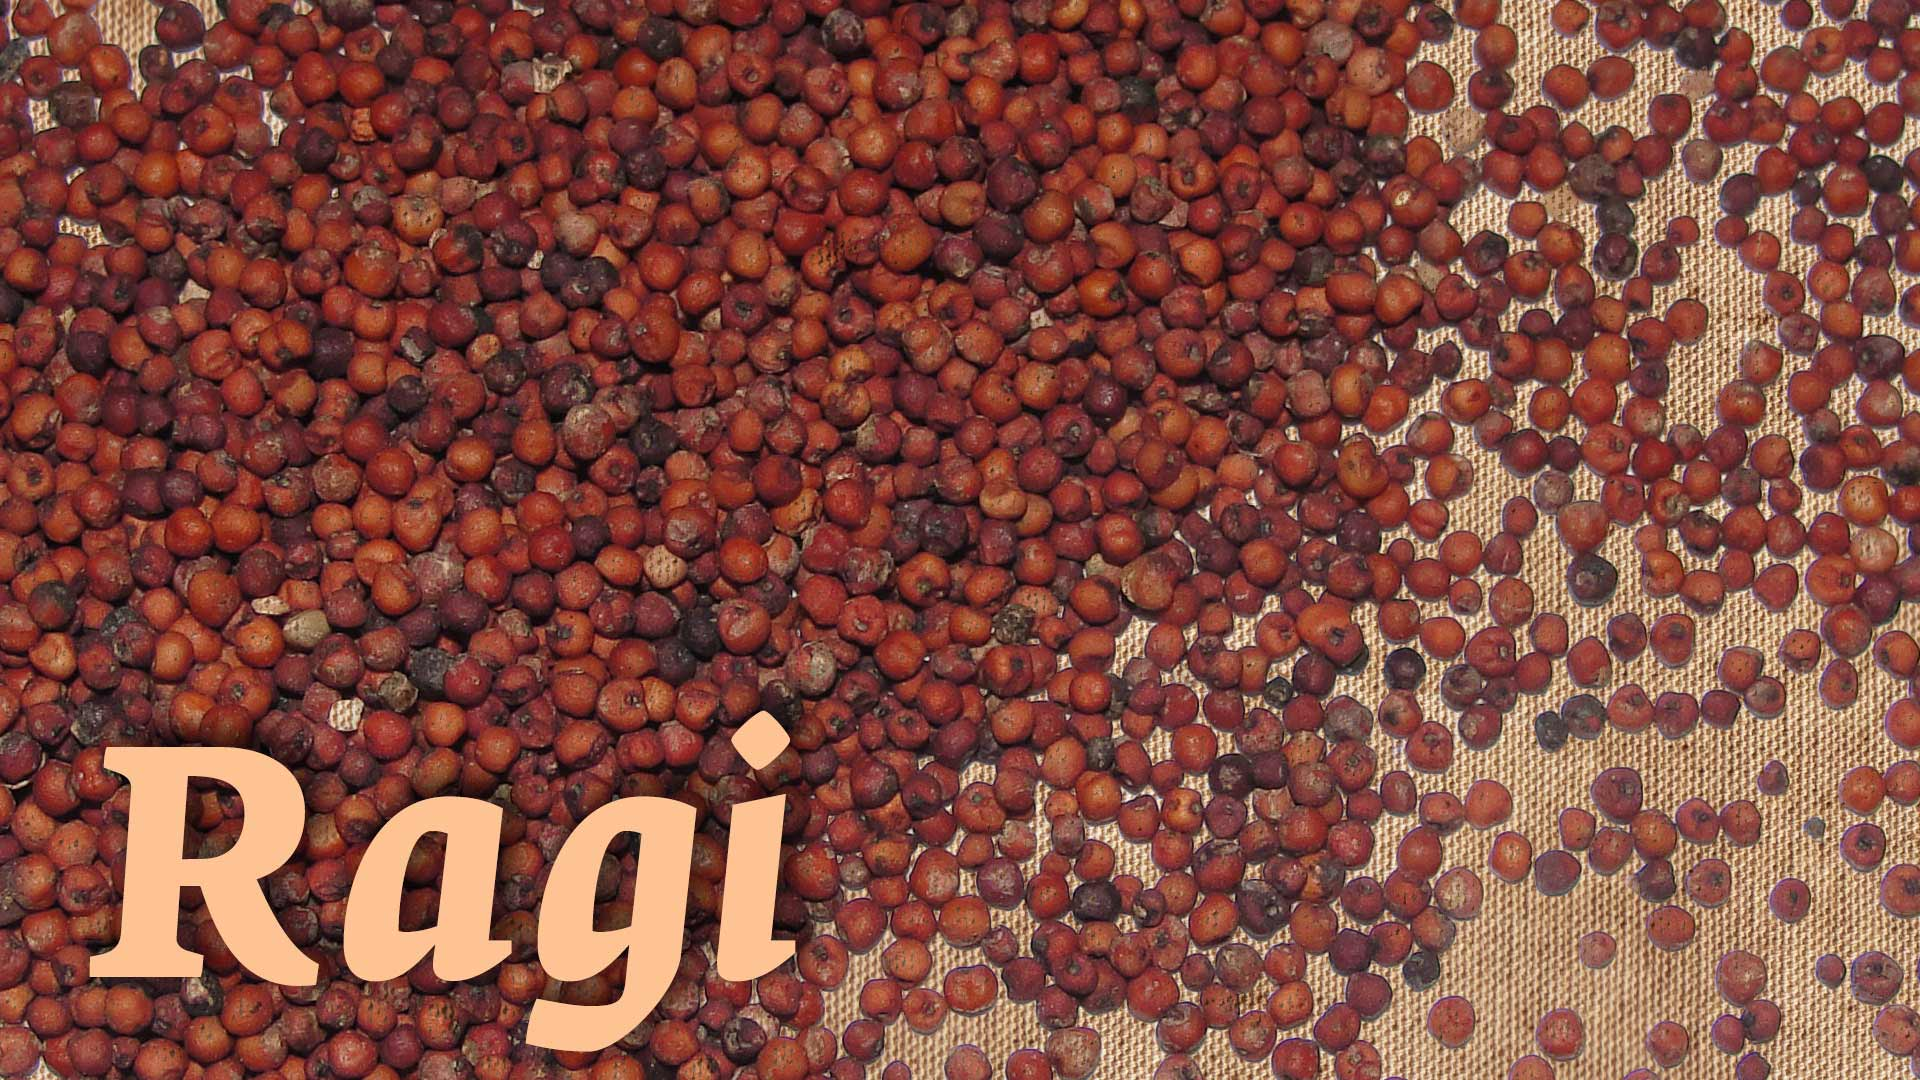 7 Health Benefits of Ragi & 6 Great Ragi Recipes